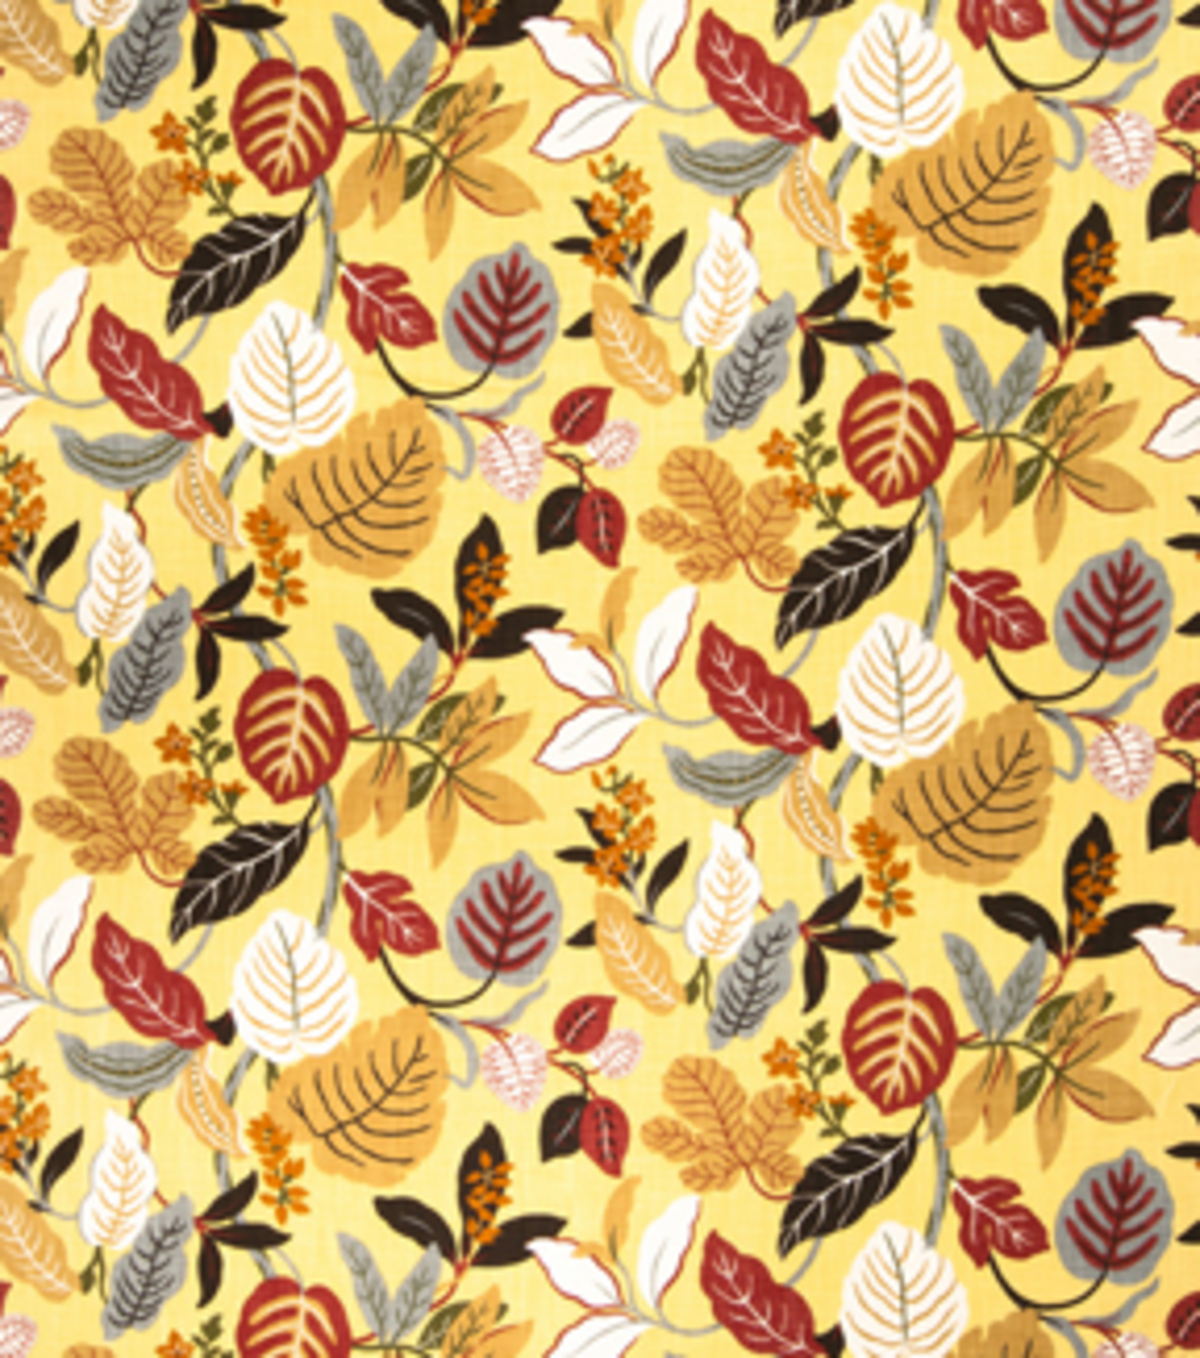 Home Decor 8\u0022x8\u0022 Fabric Swatch-Upholstery Fabric Eaton Square Ingalls Banana